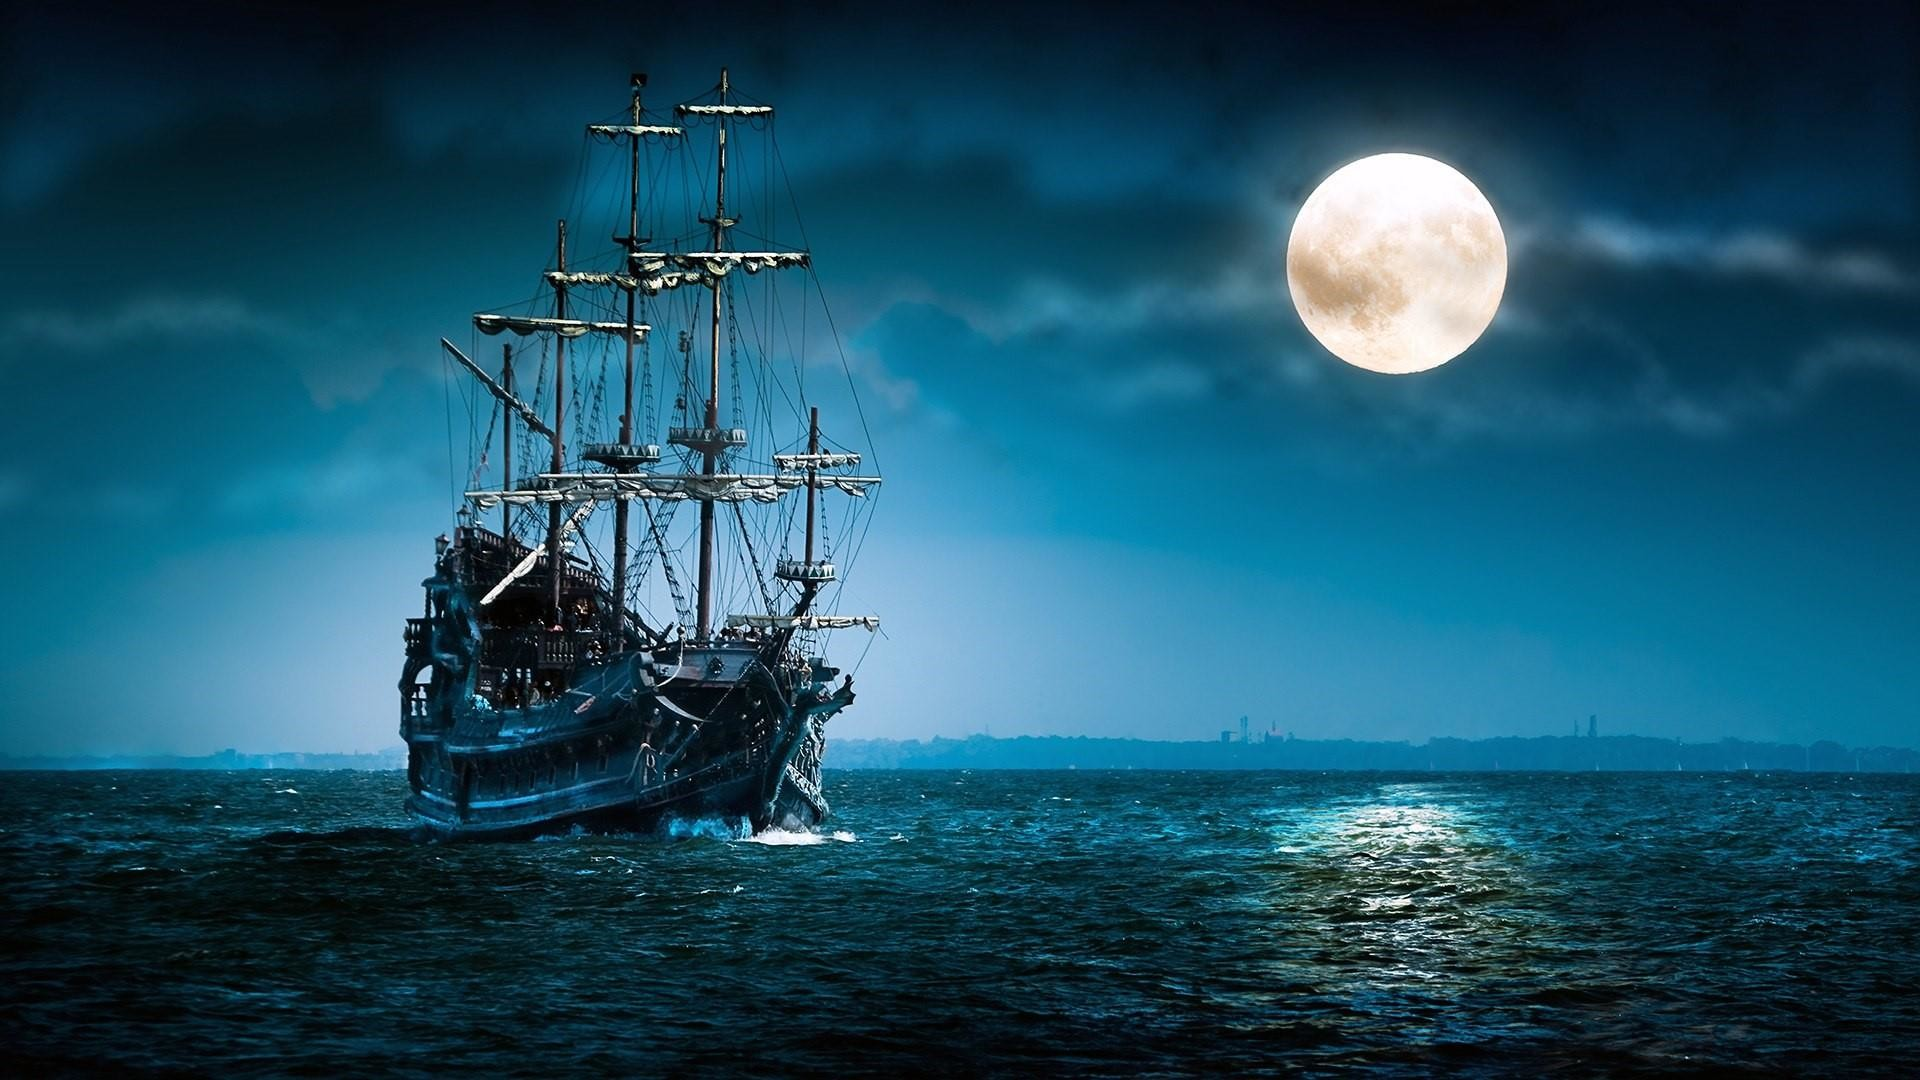 Res: 1920x1080, Vintage Sailing Ship In The Full Moon Wallpaper | Wallpaper Studio 10 |  Tens of thousands HD and UltraHD wallpapers for Android, Windows and Xbox